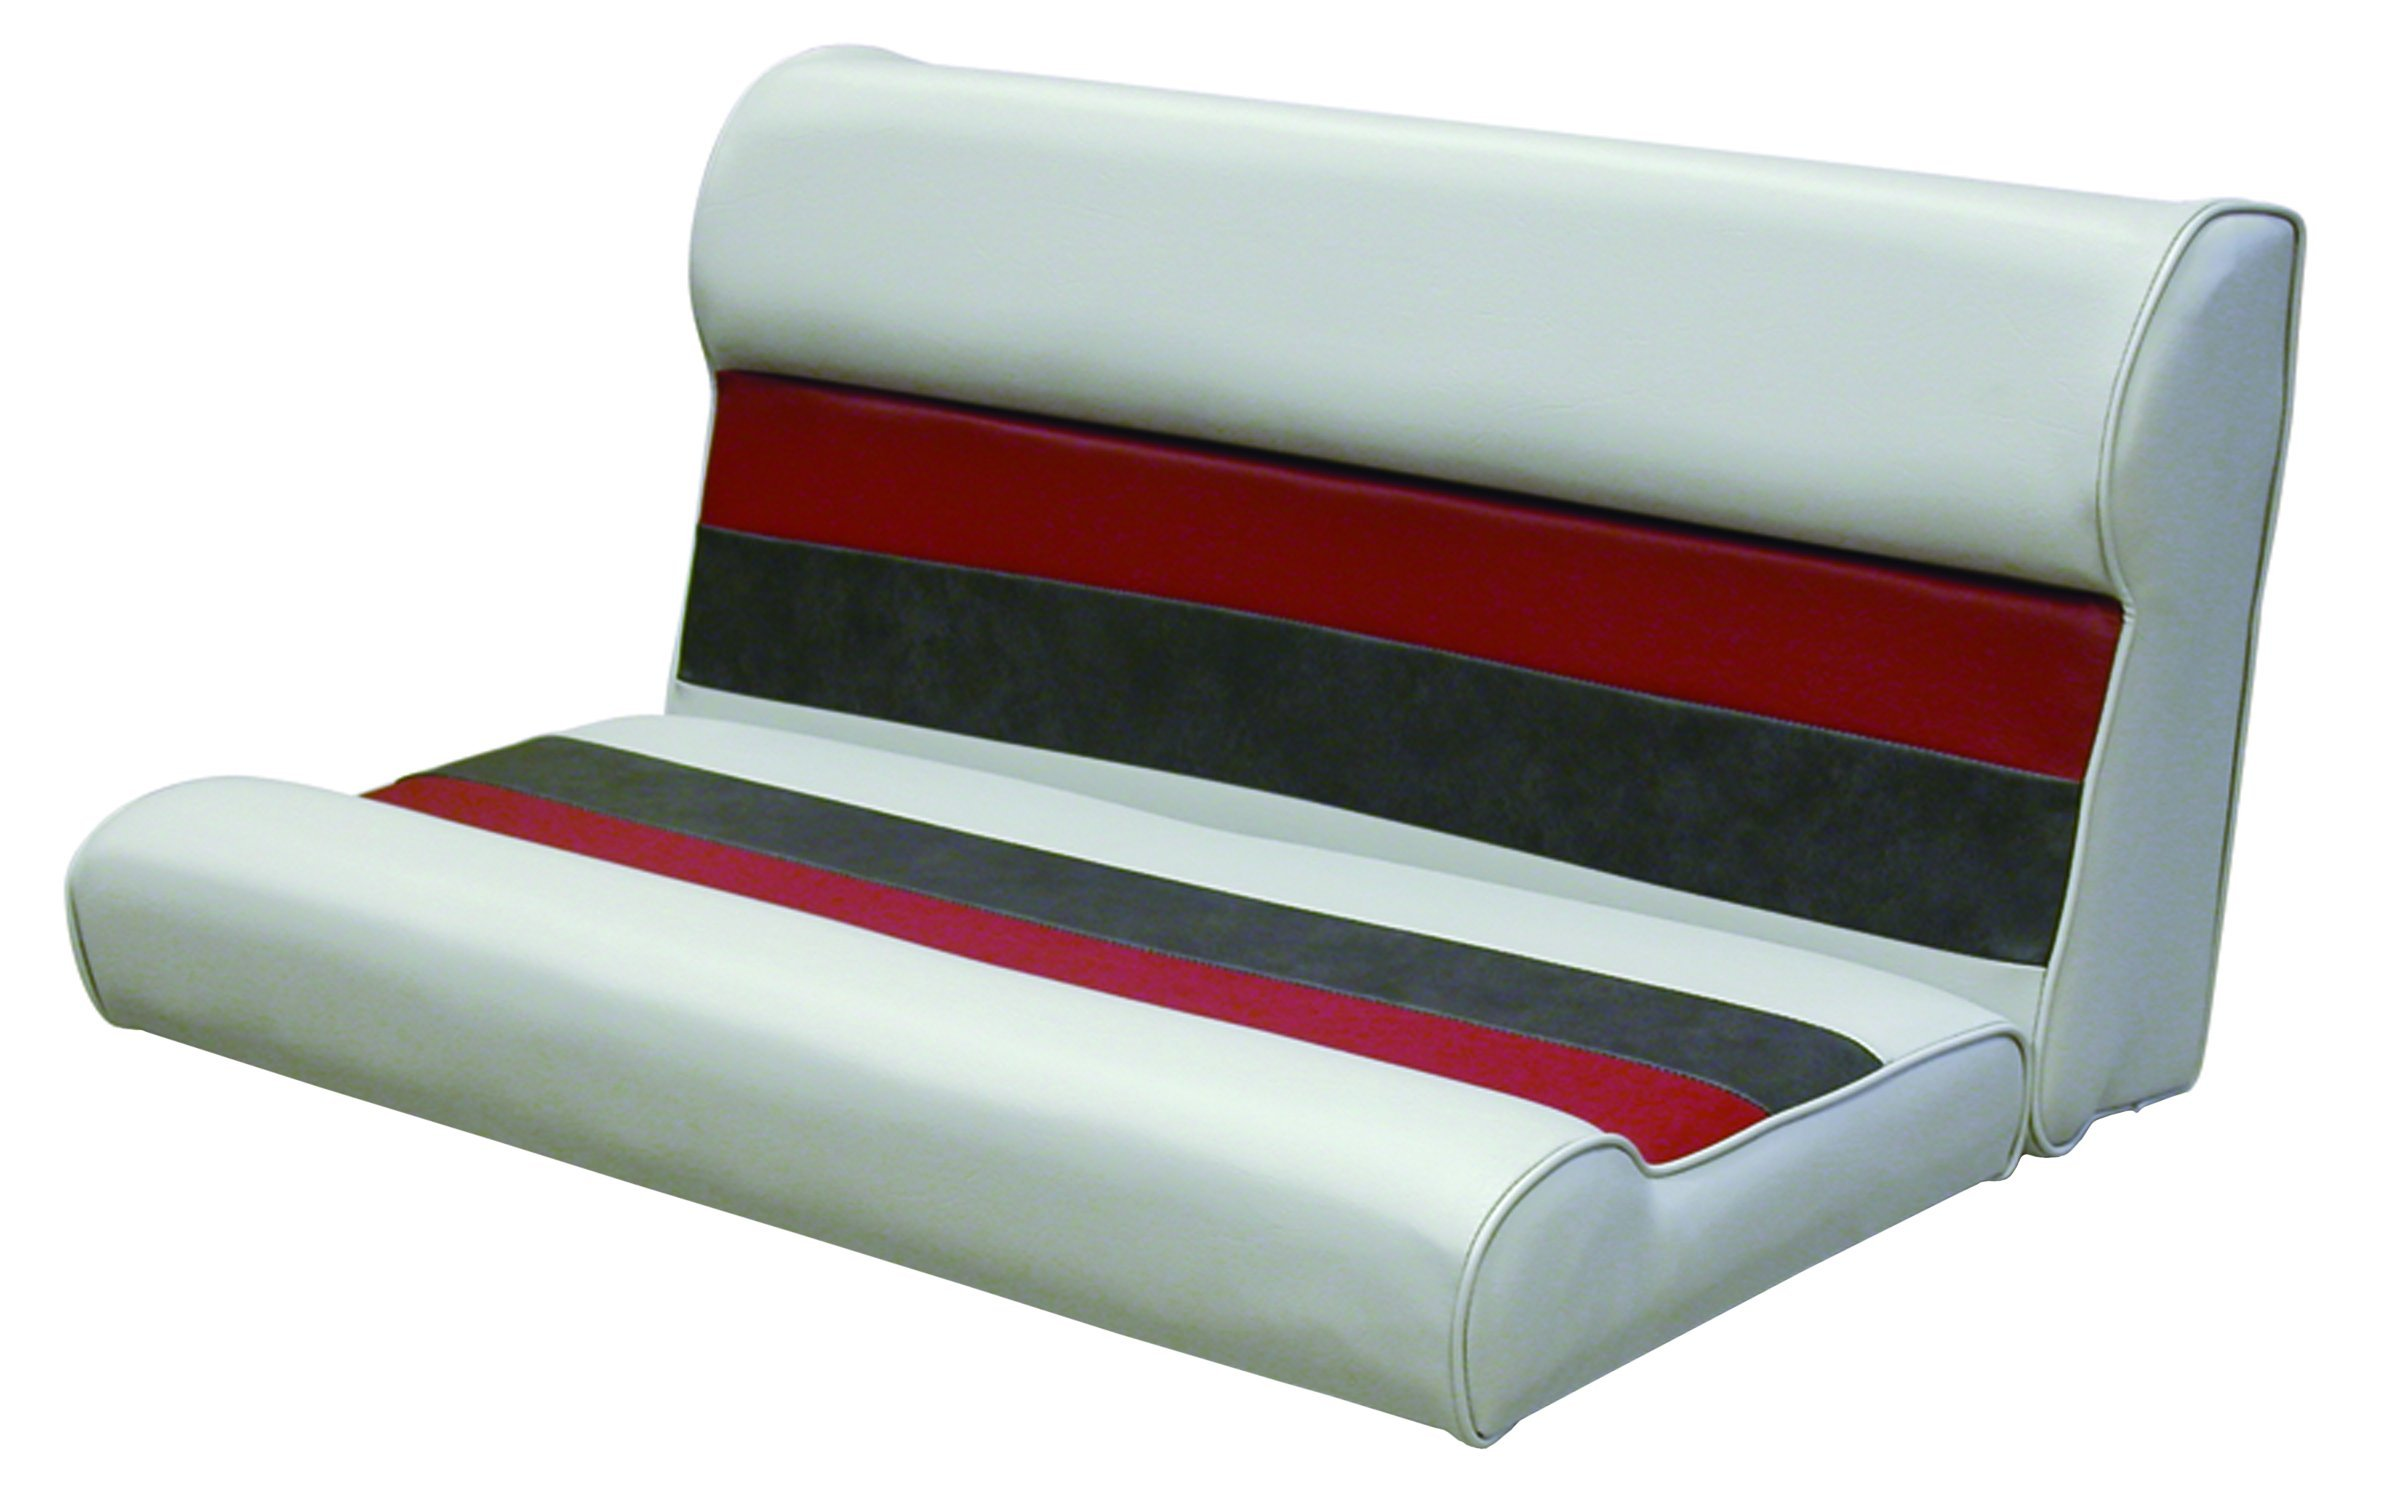 Wise 36-Inch Pontoon Bench Seat Cushion (Base Required to Complete), Gray/Red/Charcoal